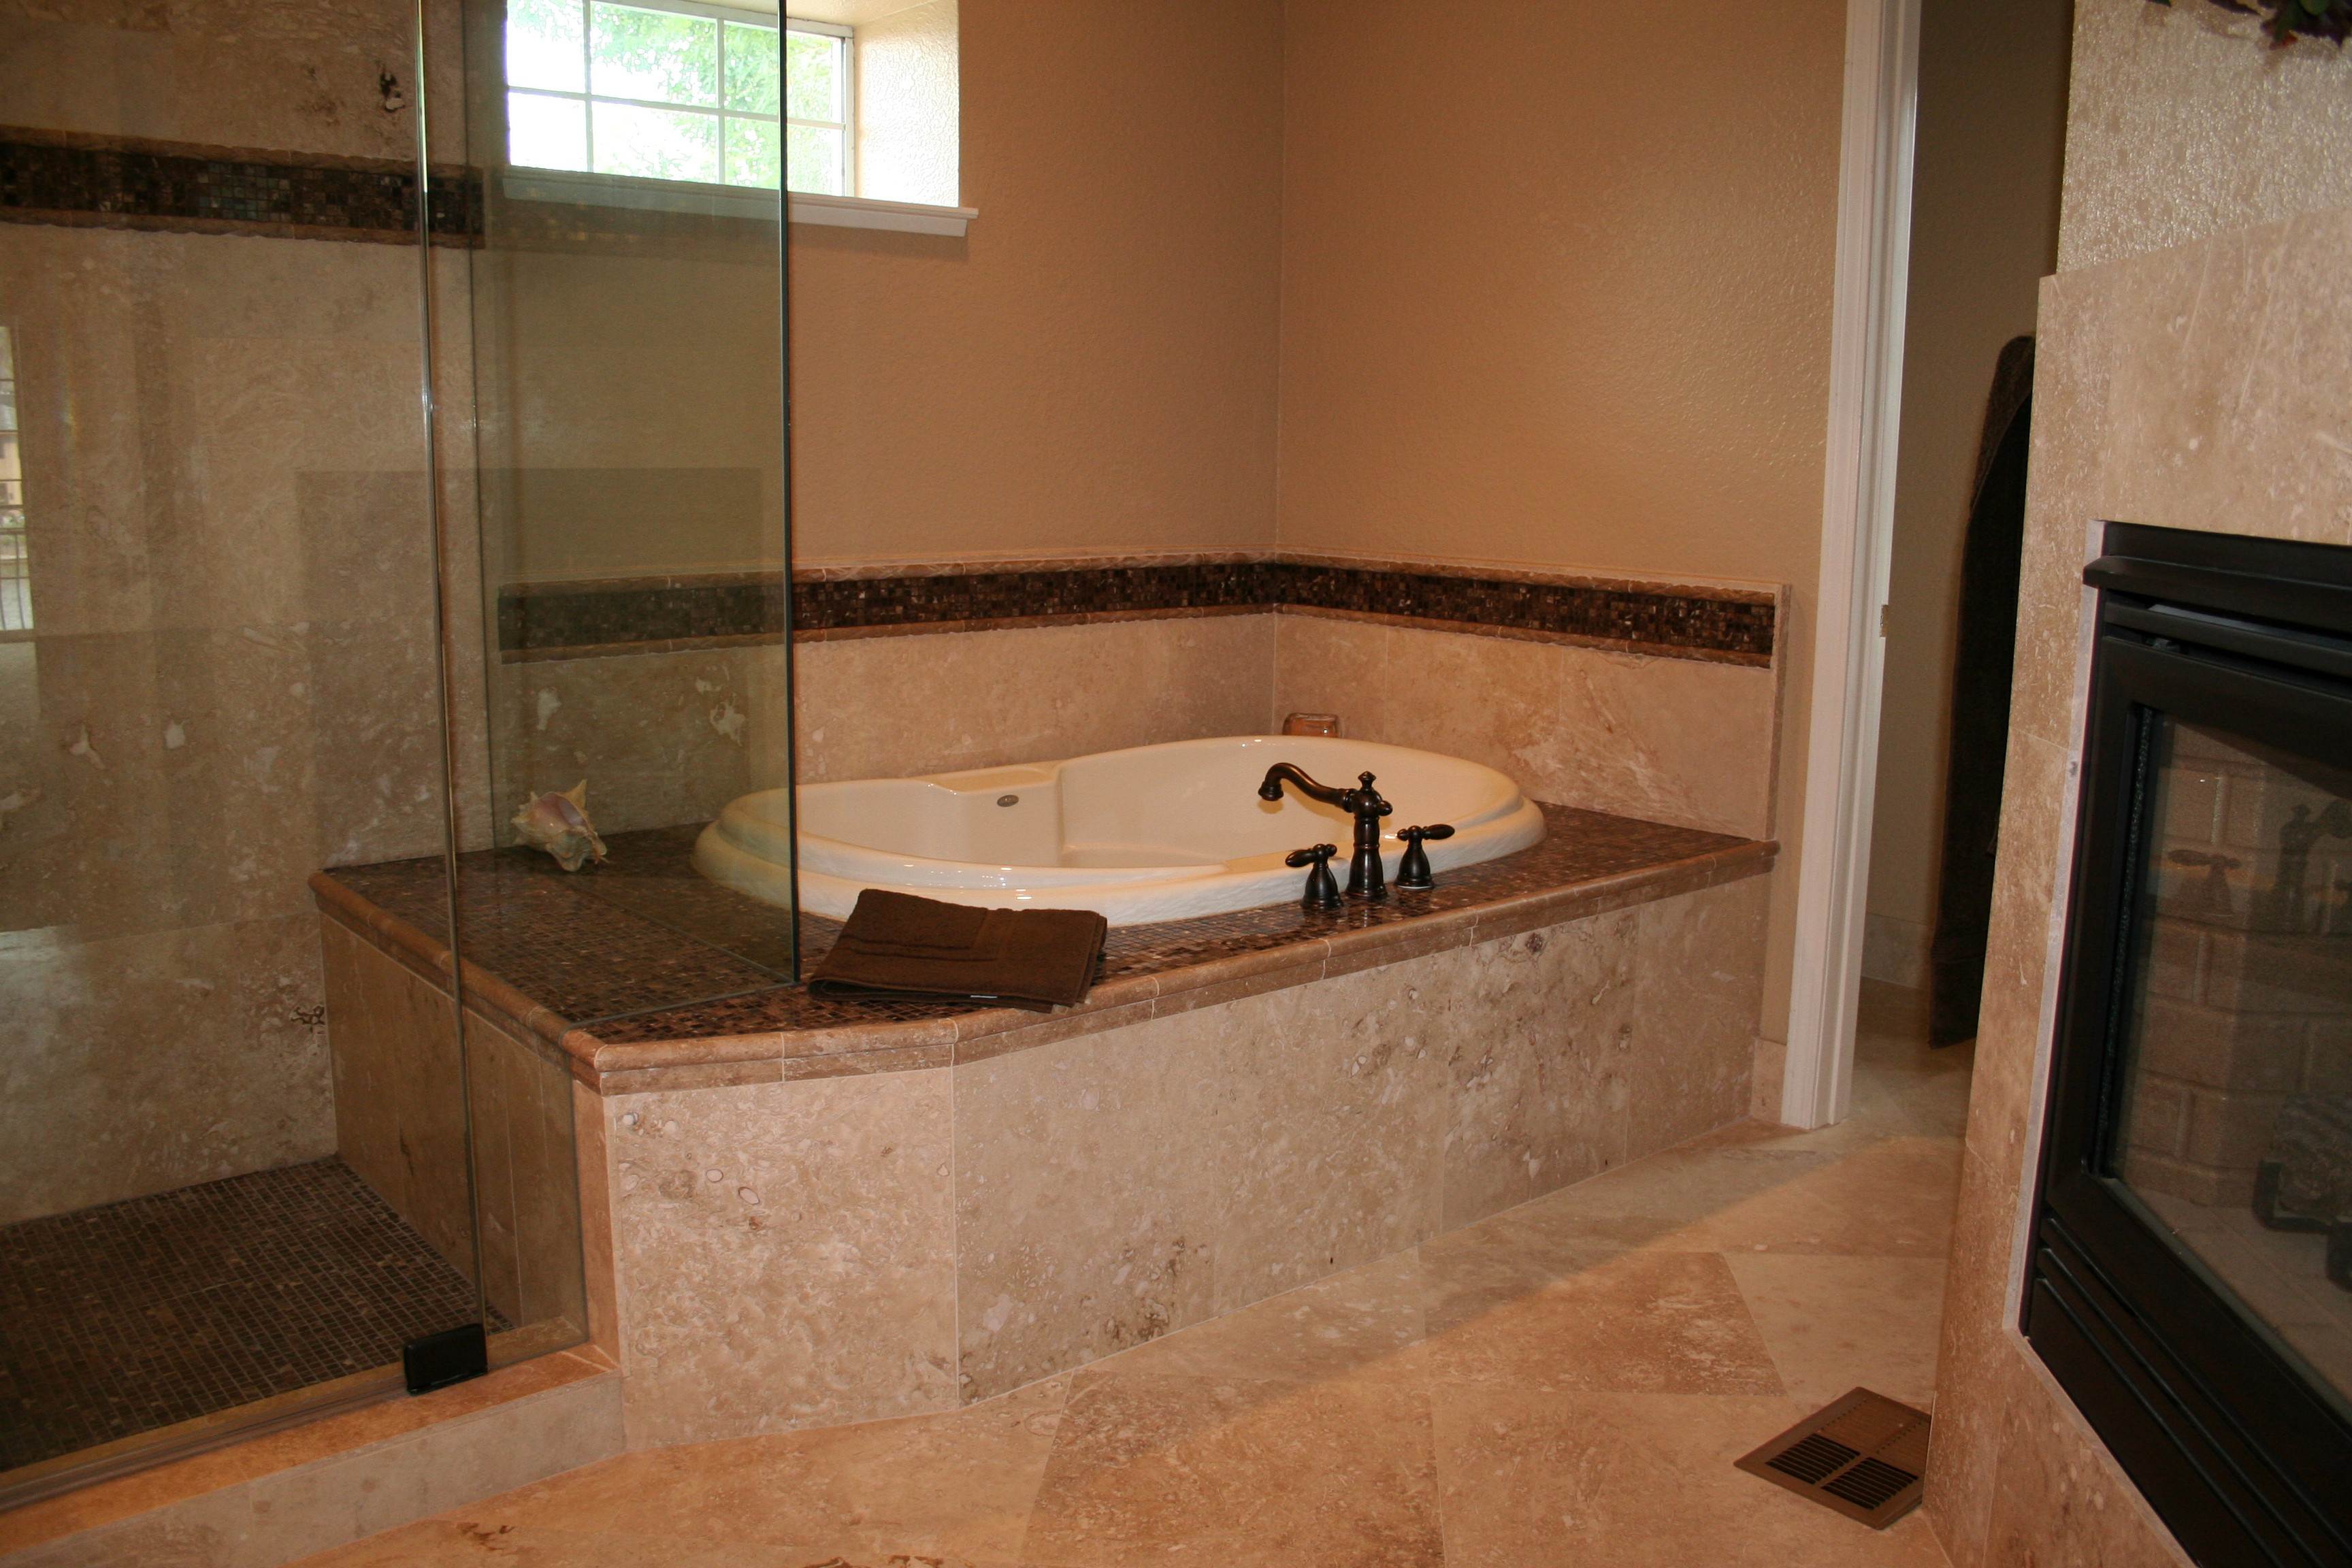 Bathroom remodel sacramento yancey company sacramento ca for Bathroom contractors